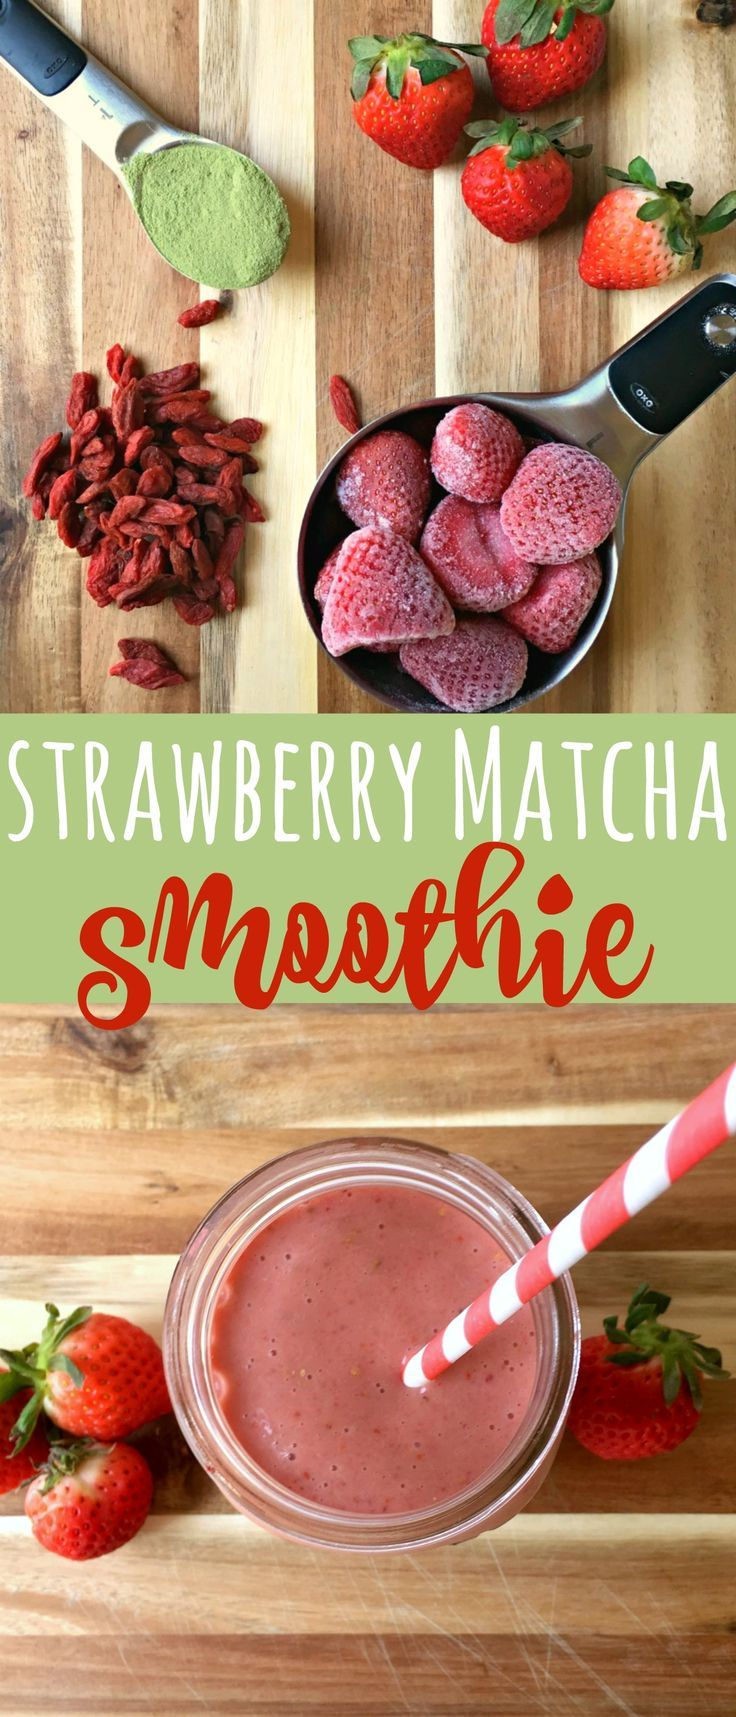 A cold glass of this delicious strawberry matcha smoothie will increase your energy, boost your antioxidant levels, and leave you feeling full and satisfied. This vegan smoothie recipe is healthy and perfect for any time of the day! (Strawberry Matcha Smoothie Recipe)